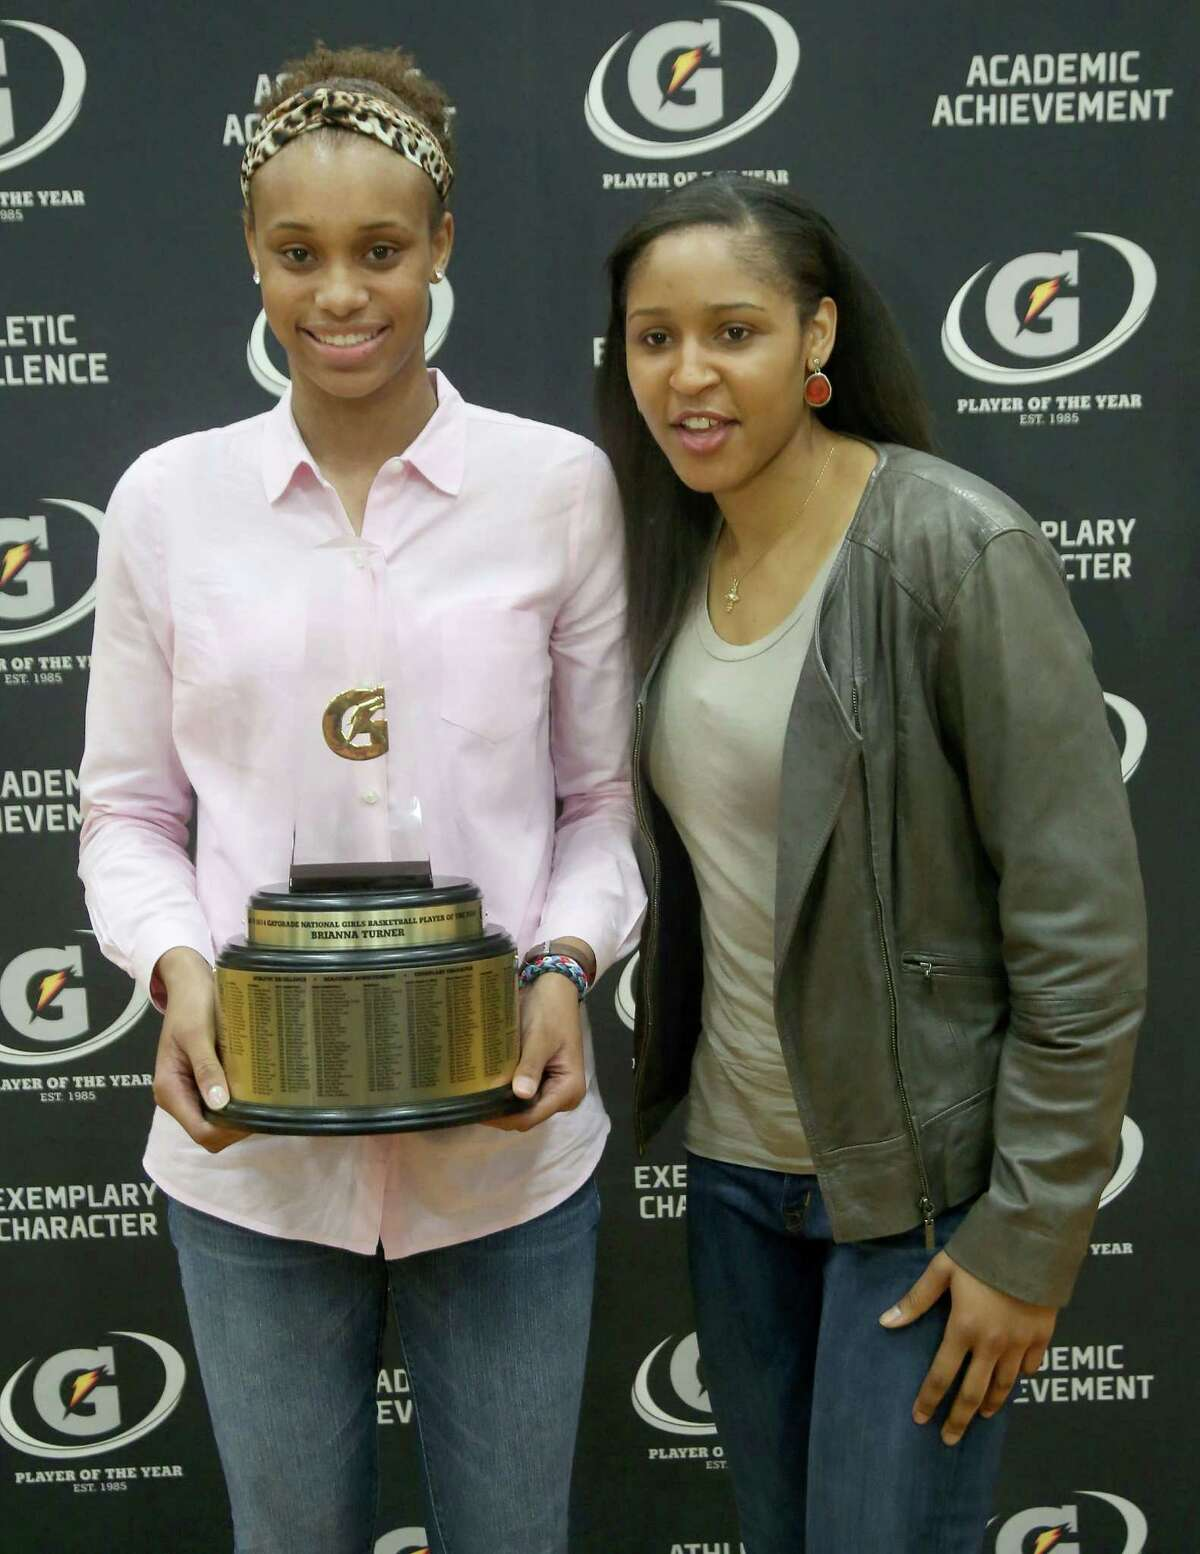 3/20/14: Brianna Turner poses with WNBA player Maya Moore. Manvel's Brianna Turner was named the 2013-14 Gatorade National Girls Basketball Player of the Year. at Manvel High School in Alvin, TX. Presenting the award was 2006-07 player of the year Maya Moore, who plays in the WNBA. and Aminah Charles from Gatorade.